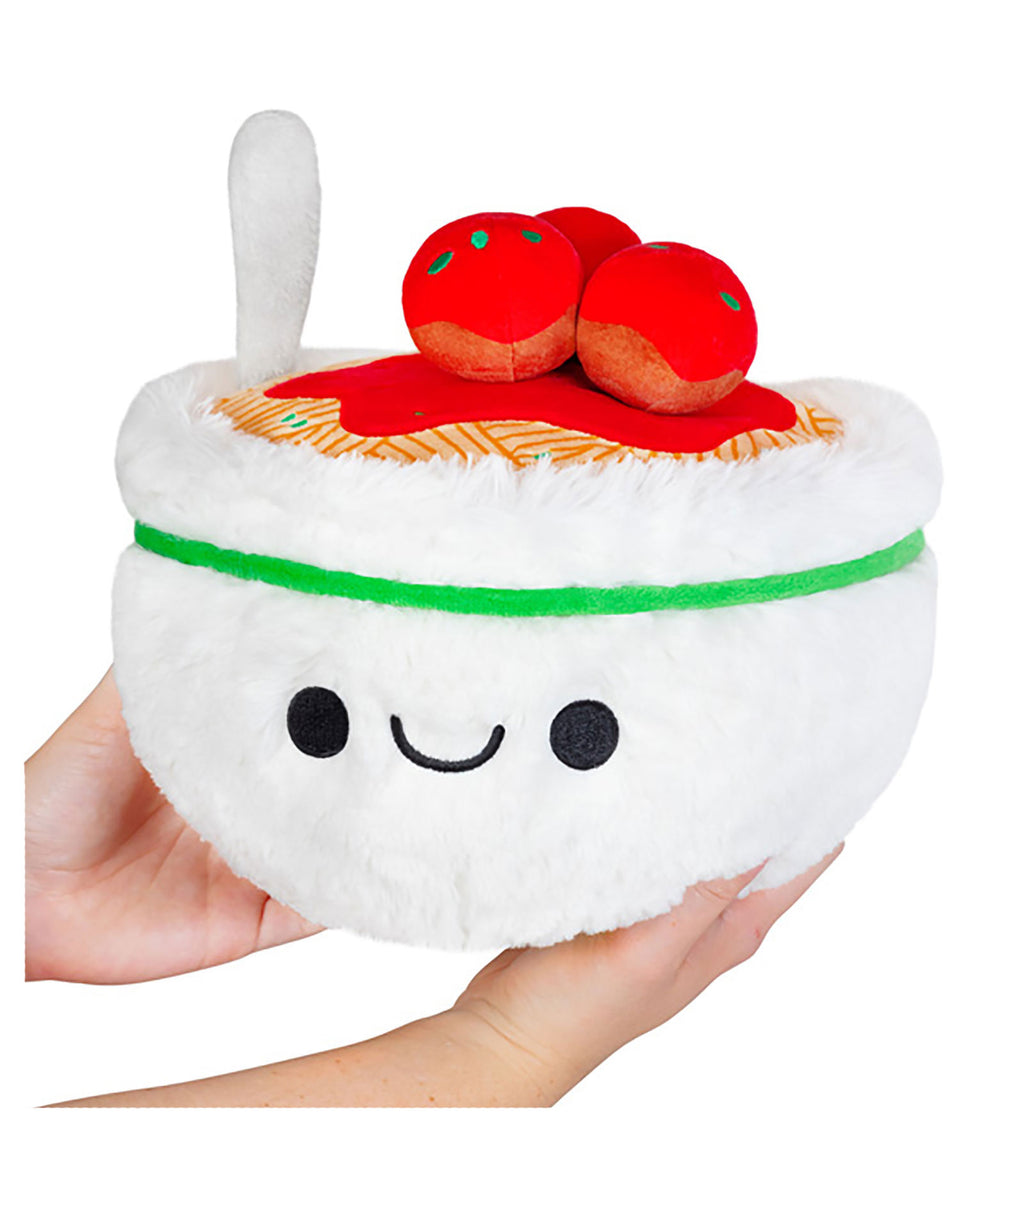 Squishable Mini Spaghetti and Meatballs